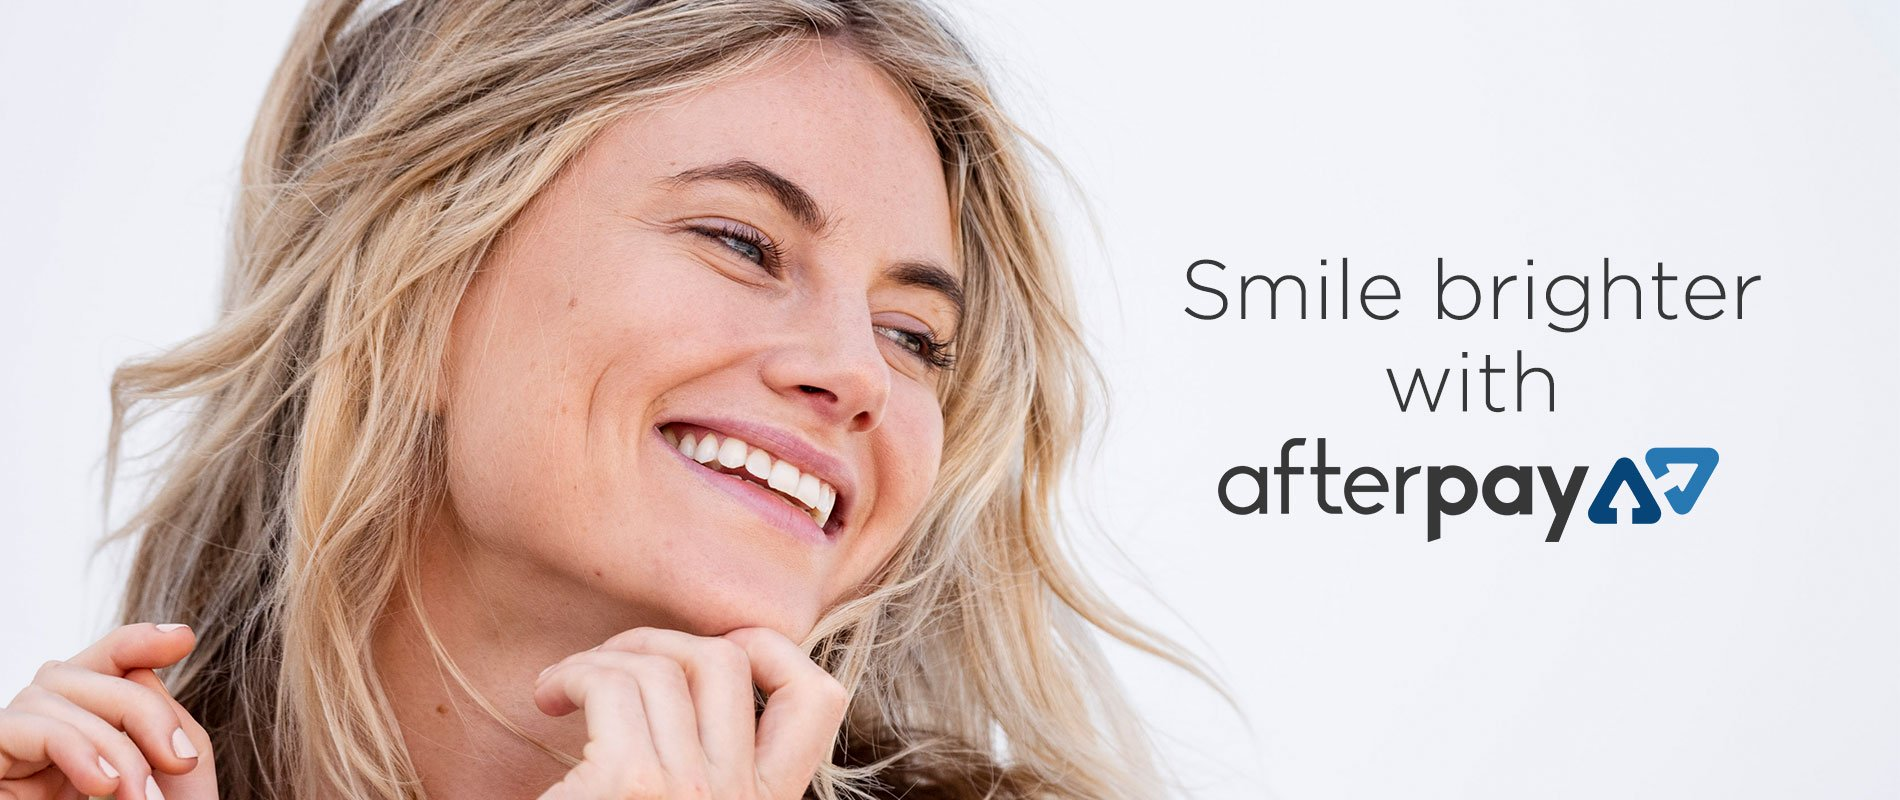 smile brighter afterpay banner